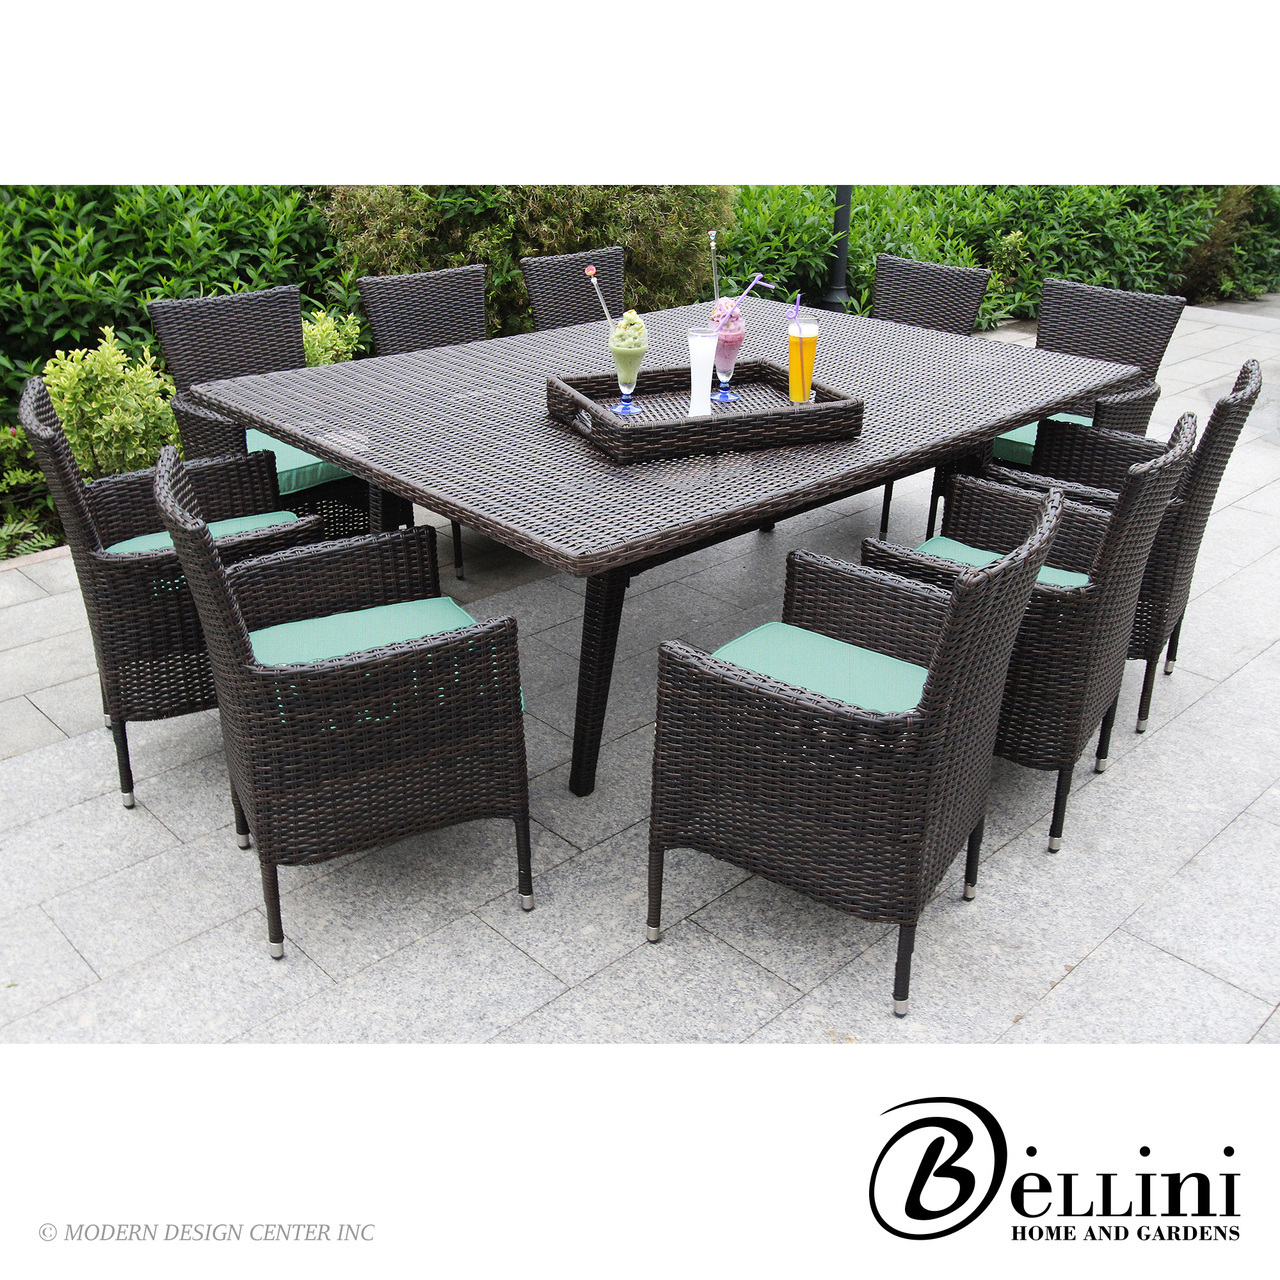 Laredo 12-piece Dining Set W81412 | Bellini